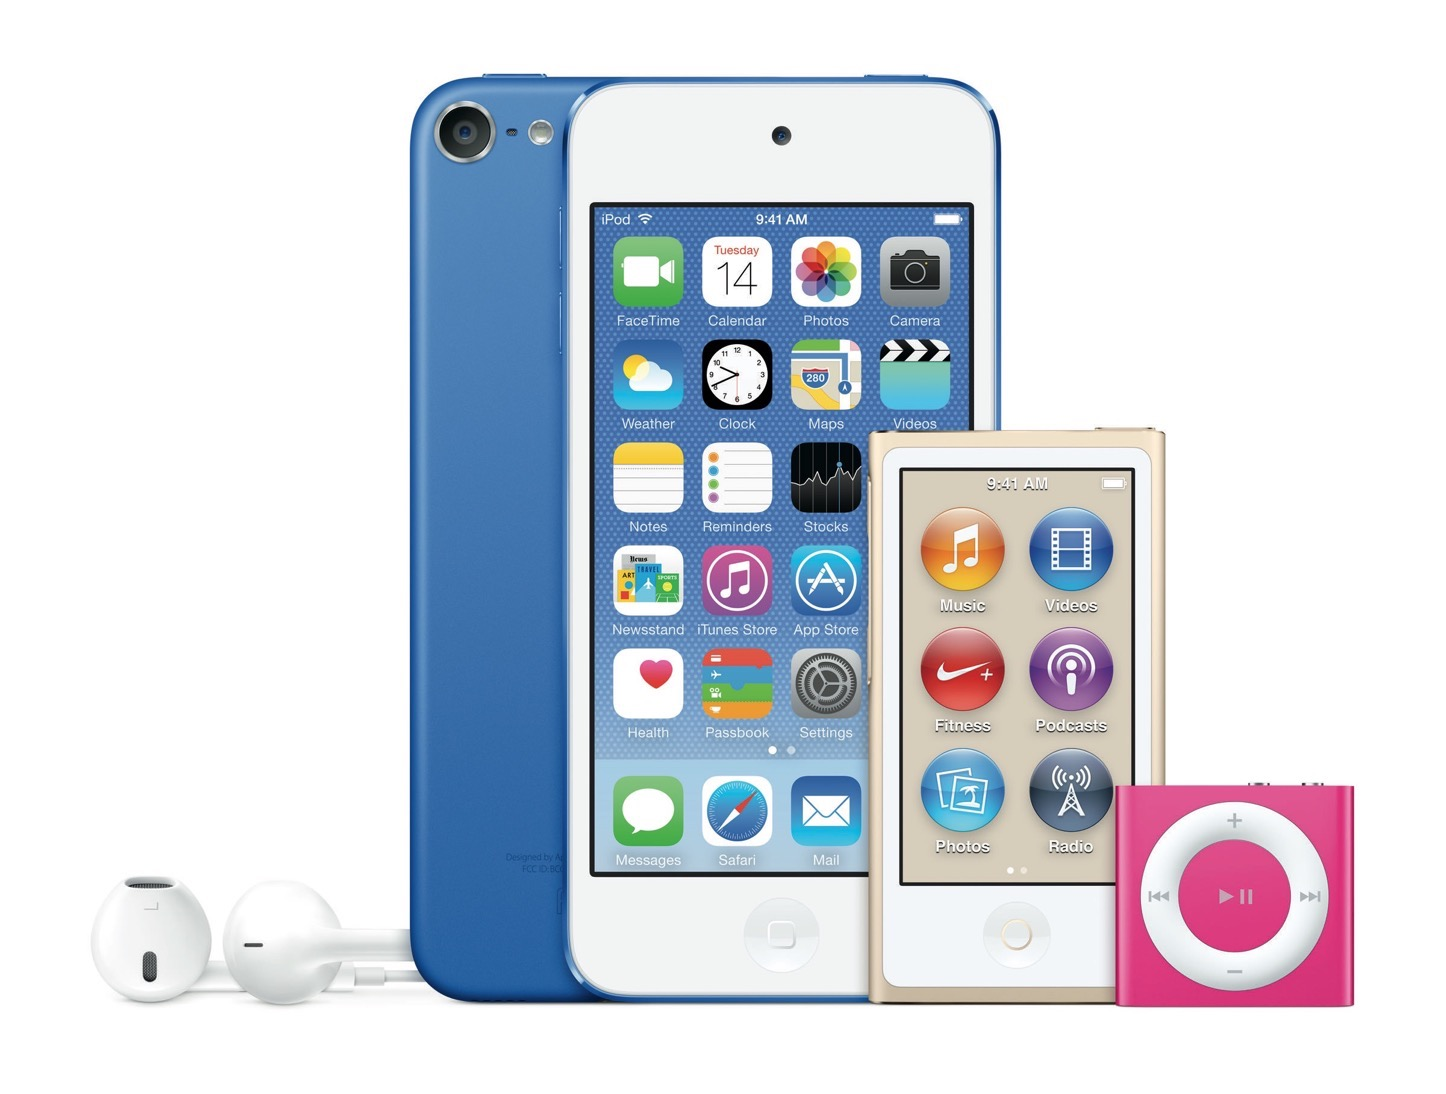 New-iPod-Series-01.jpg